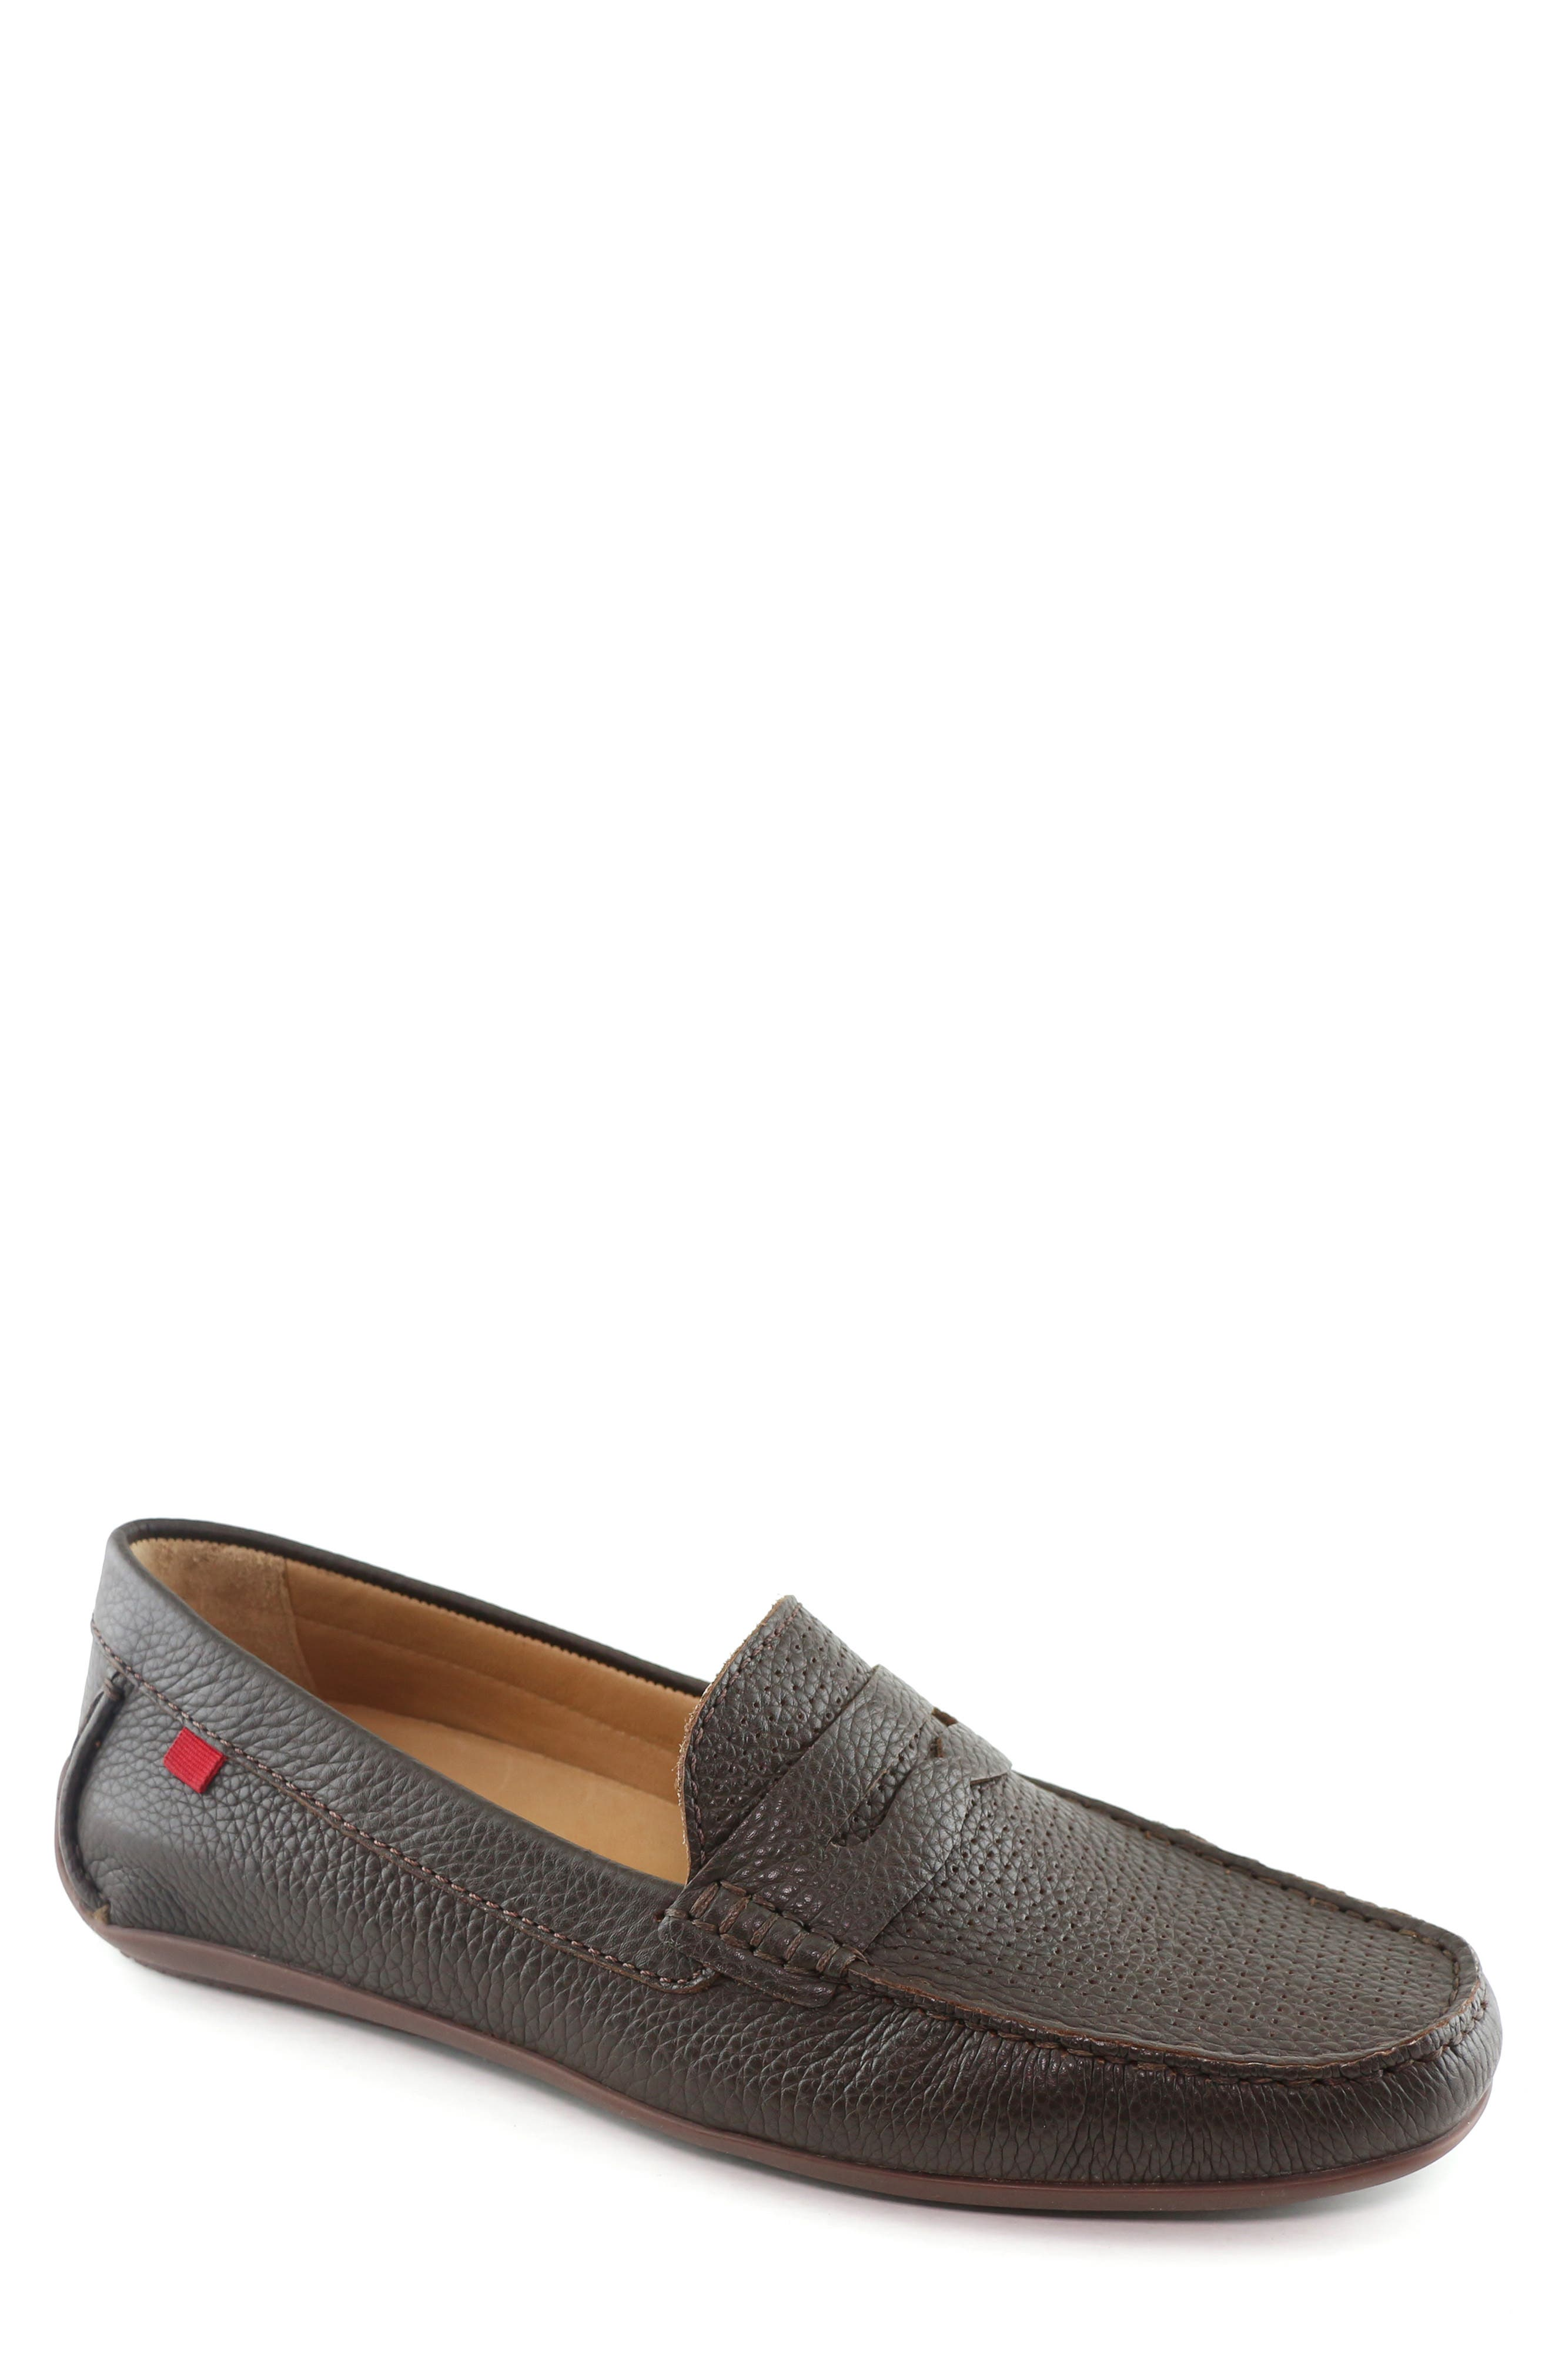 MARC JOSEPH NEW YORK 'Union Street' Penny Loafer, Main, color, BROWN GRAINY LEATHER